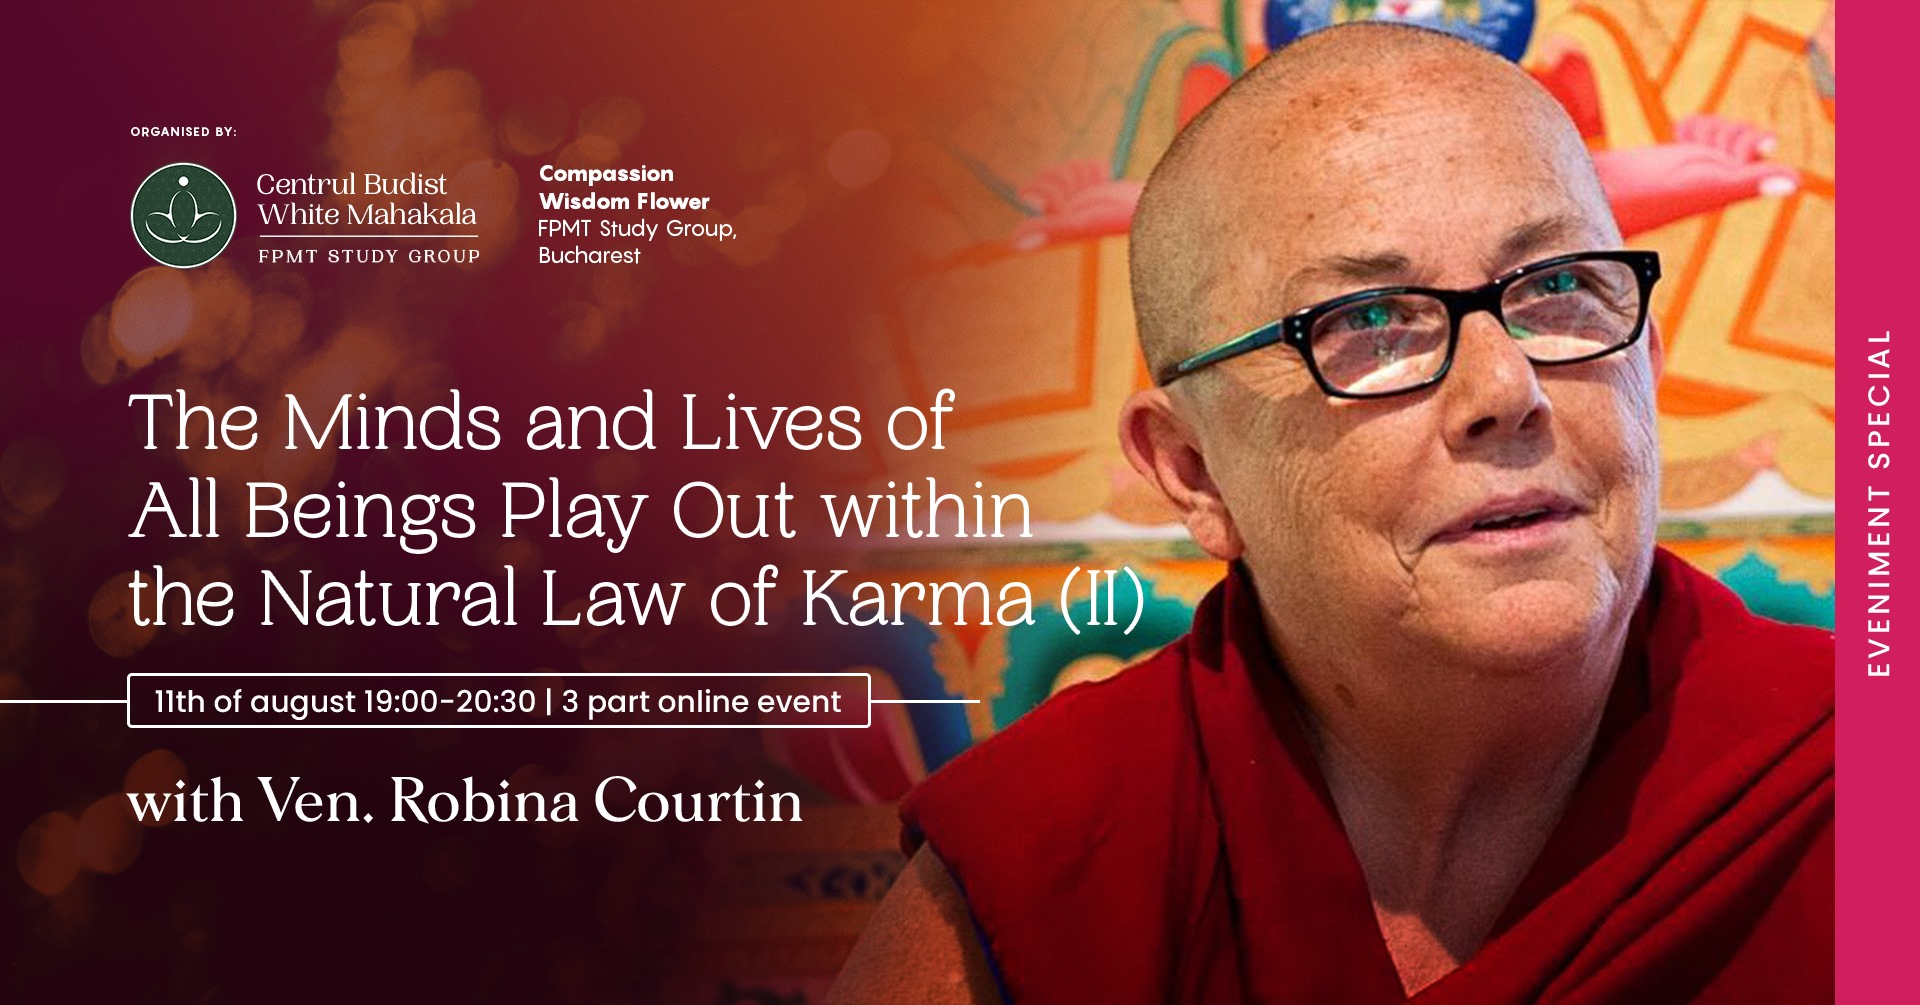 The Minds and Lives of All Beings Play Out within the Natural Law of Karma(II)